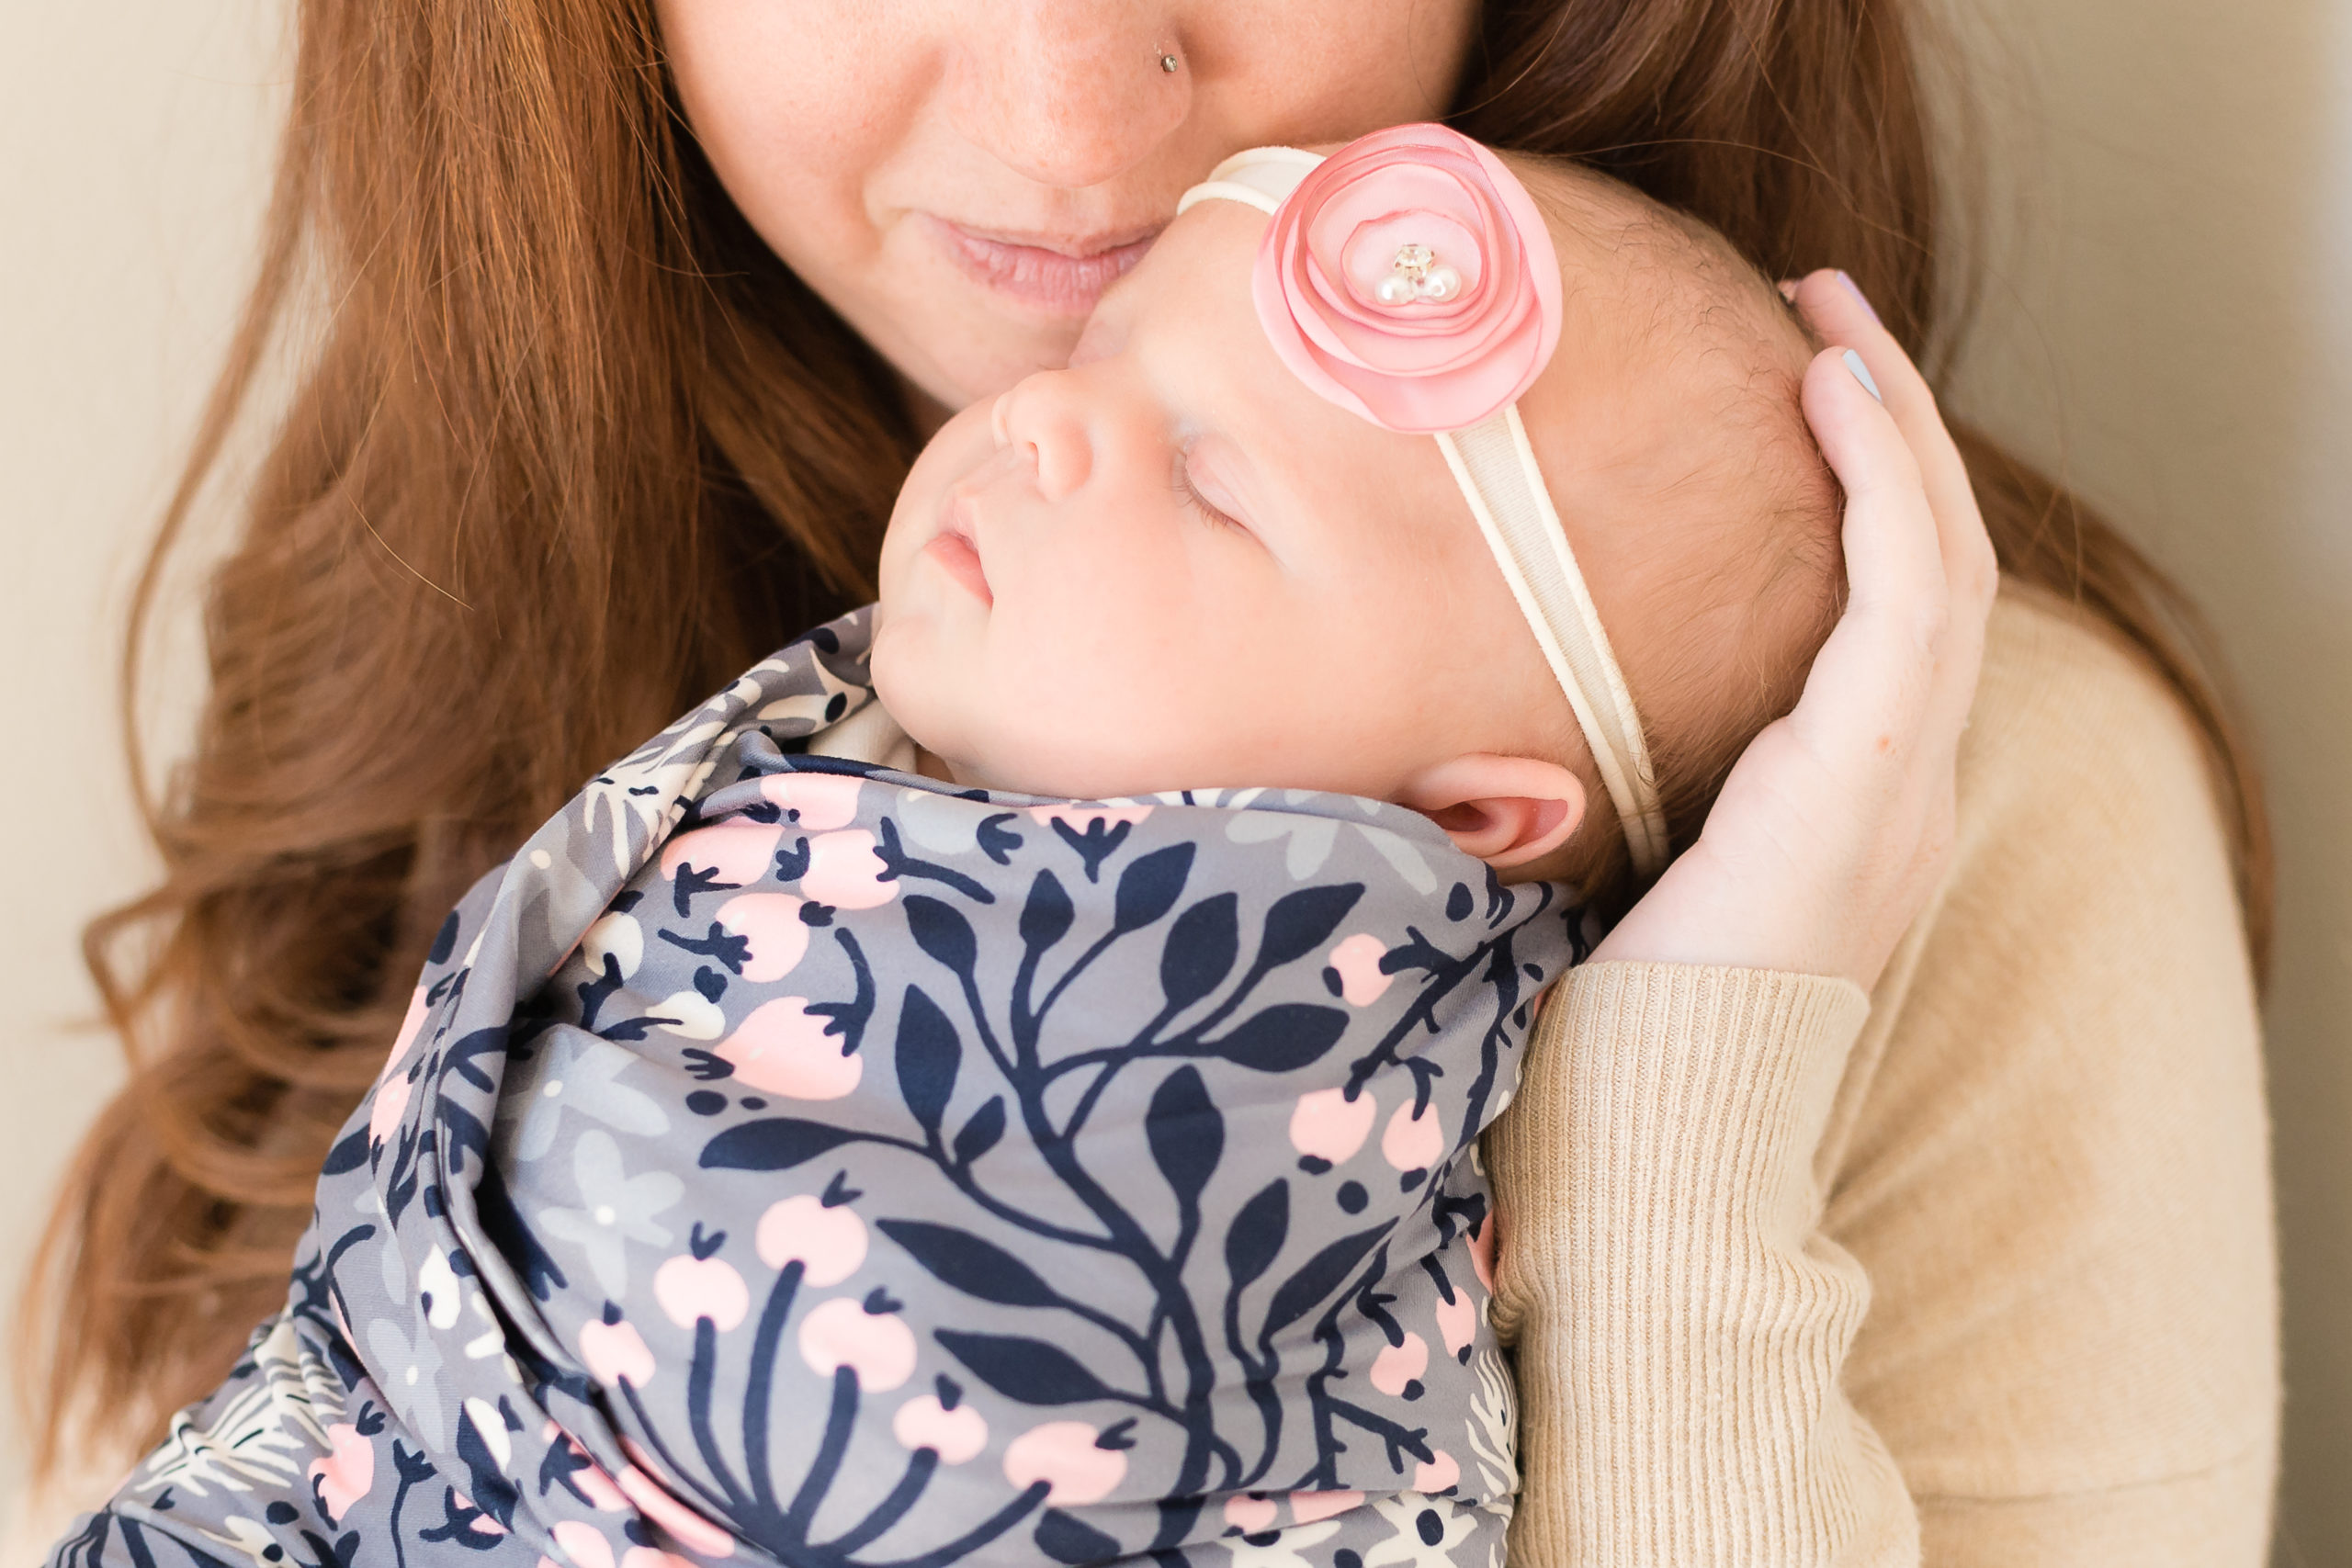 up close image of mother and newborn daughter during mommy and me lifestyle newborn session. mother is cradling newborn's head and snuggling into baby's temple. they are bathed in beautiful natural light